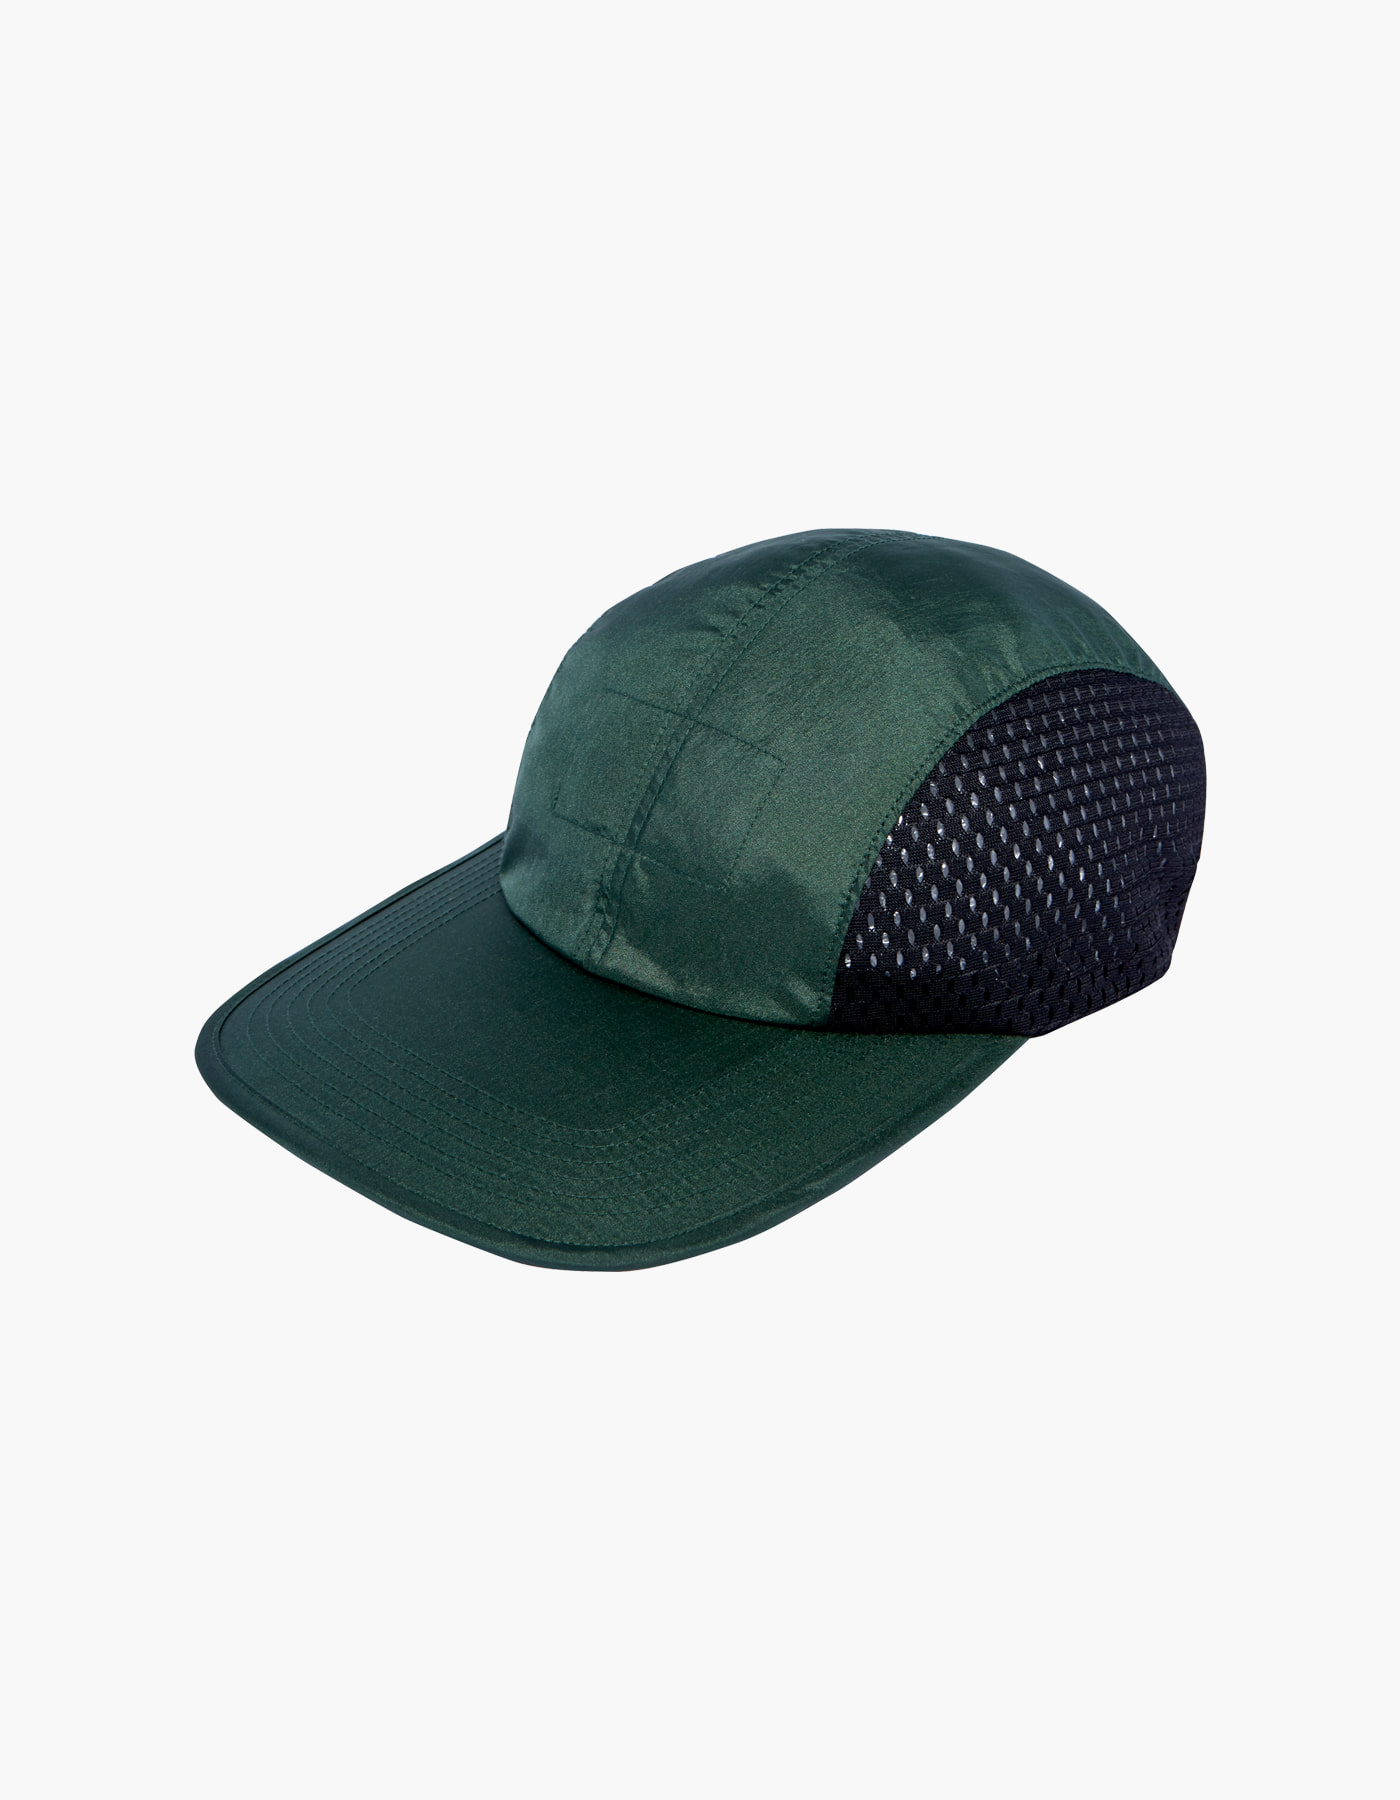 NYLON AURORA WASHER CAP II / DARK GREEN